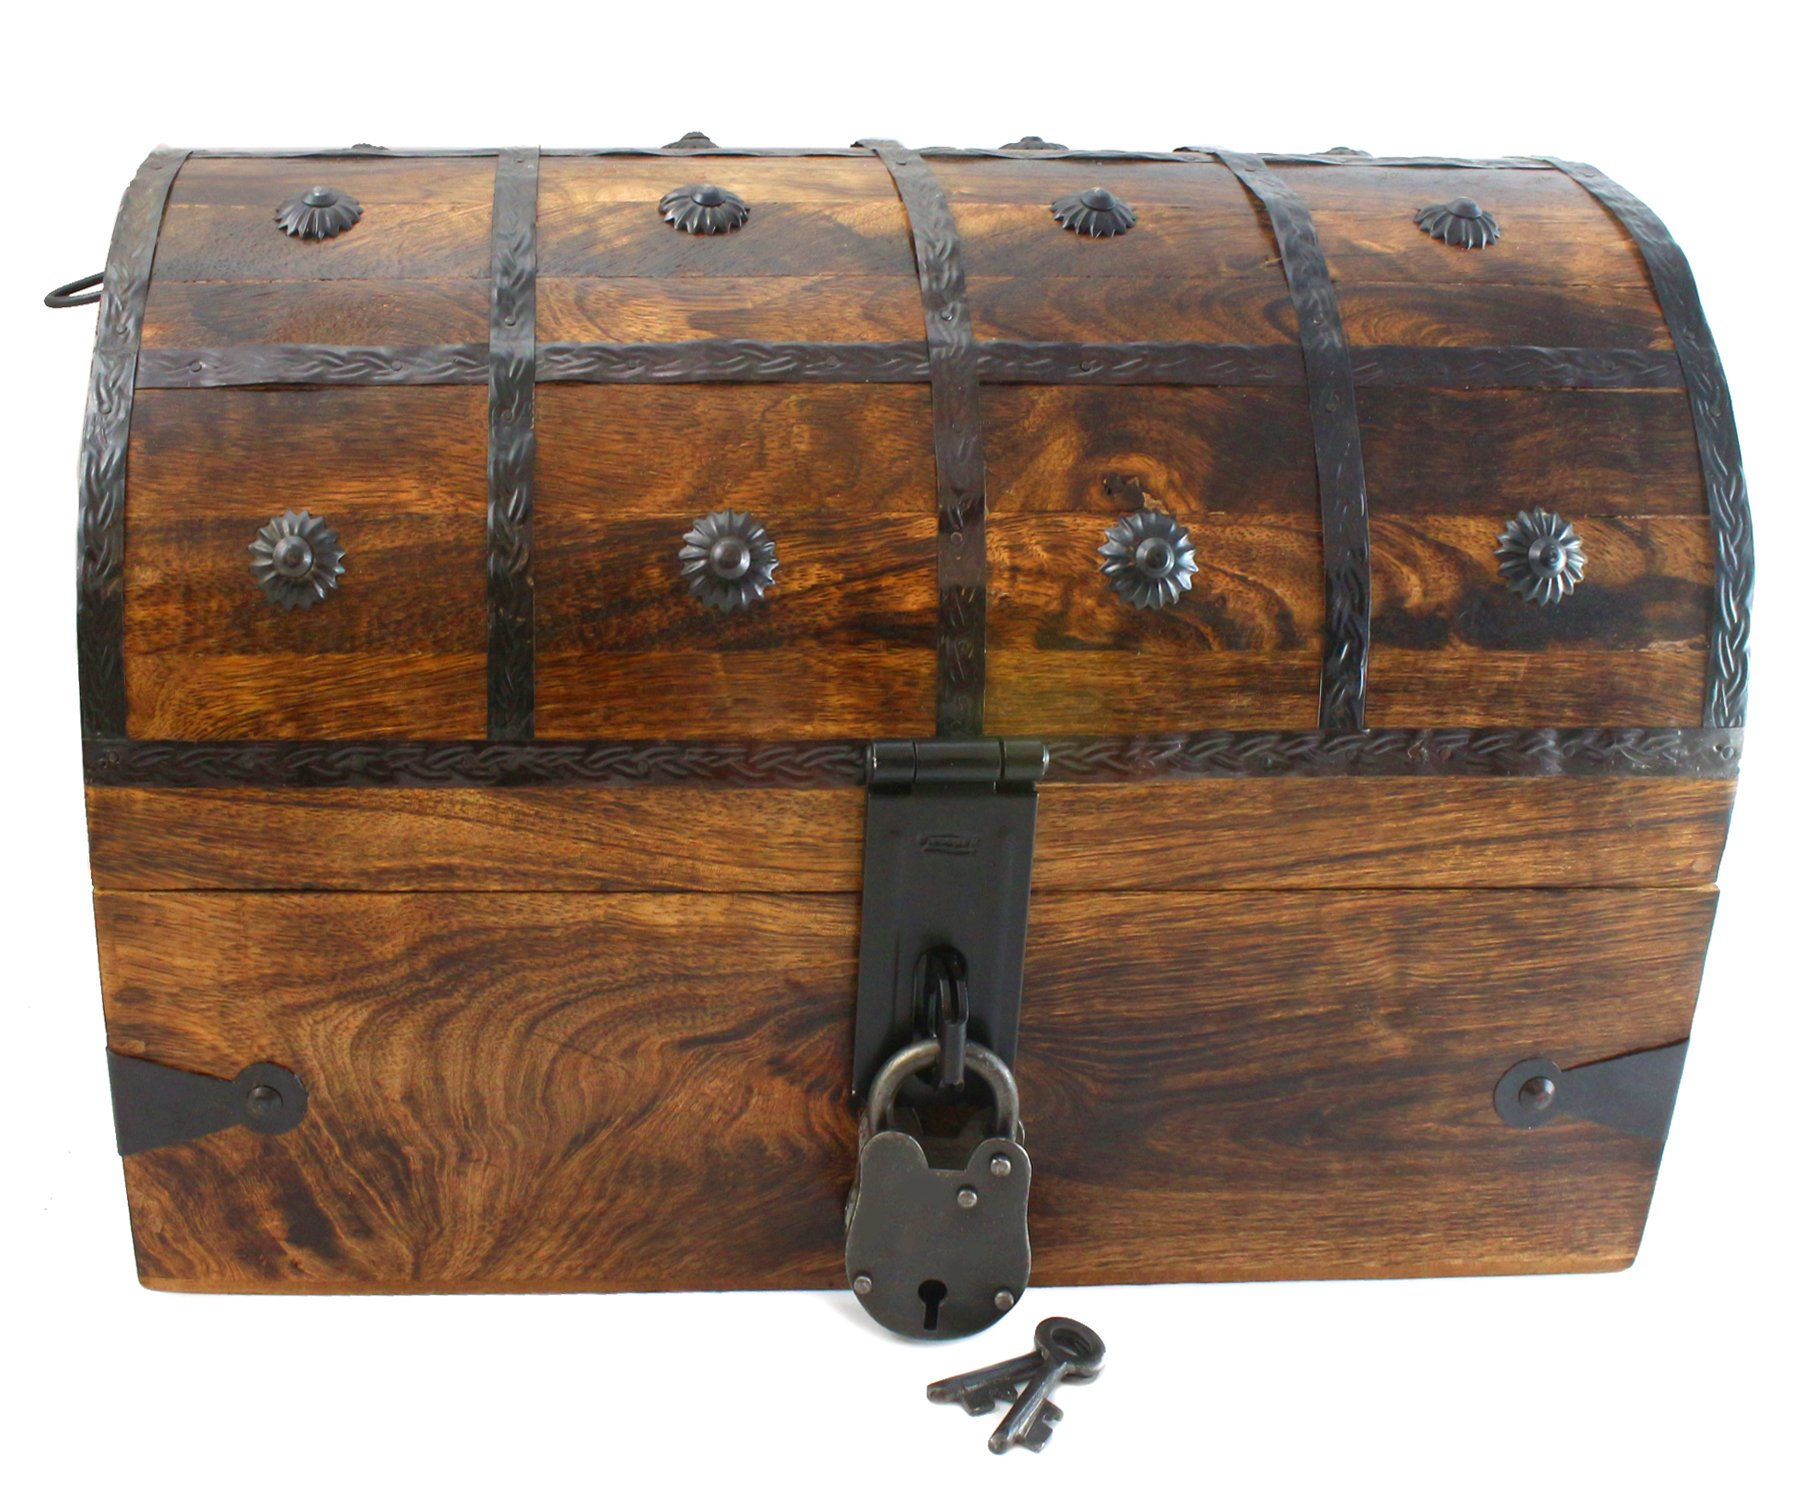 "Well Pack Box Wooden Pirate Treasure Chest Box 15"" x 10"" x 10"" Black Bart Model Authentic Antique Style With Black Hasp Latch Includes Master Padlock & Vintage Skeleton Keys"